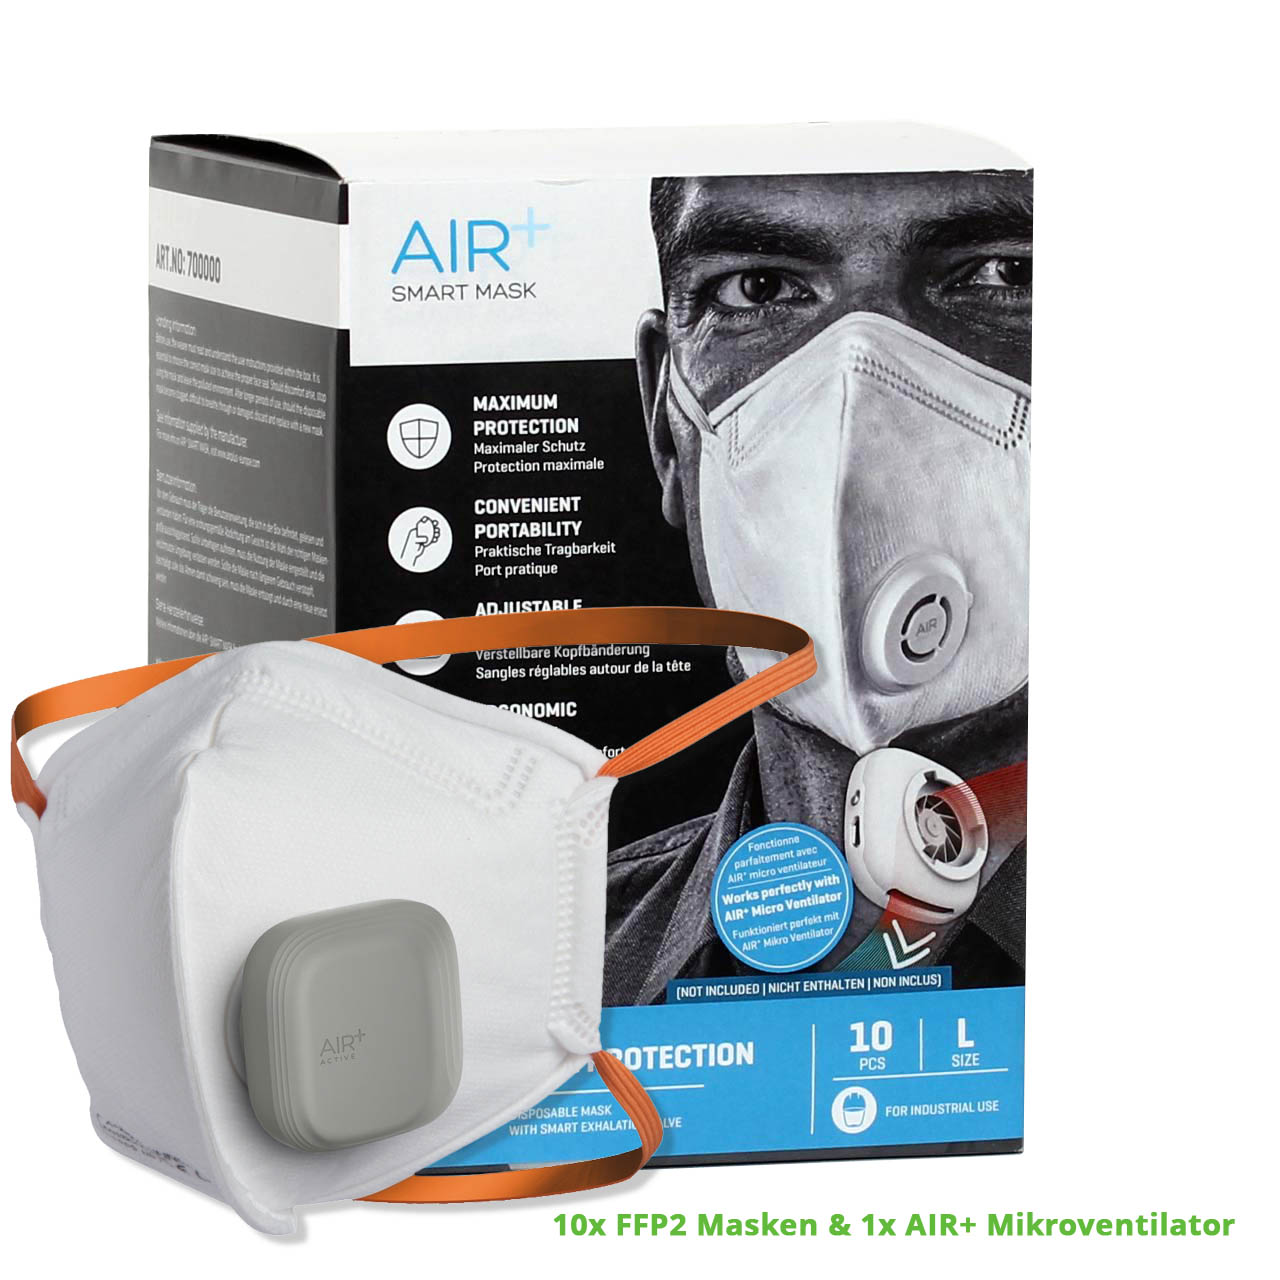 Ventilator & 10 FFP2 Masken | AIR+ Shop